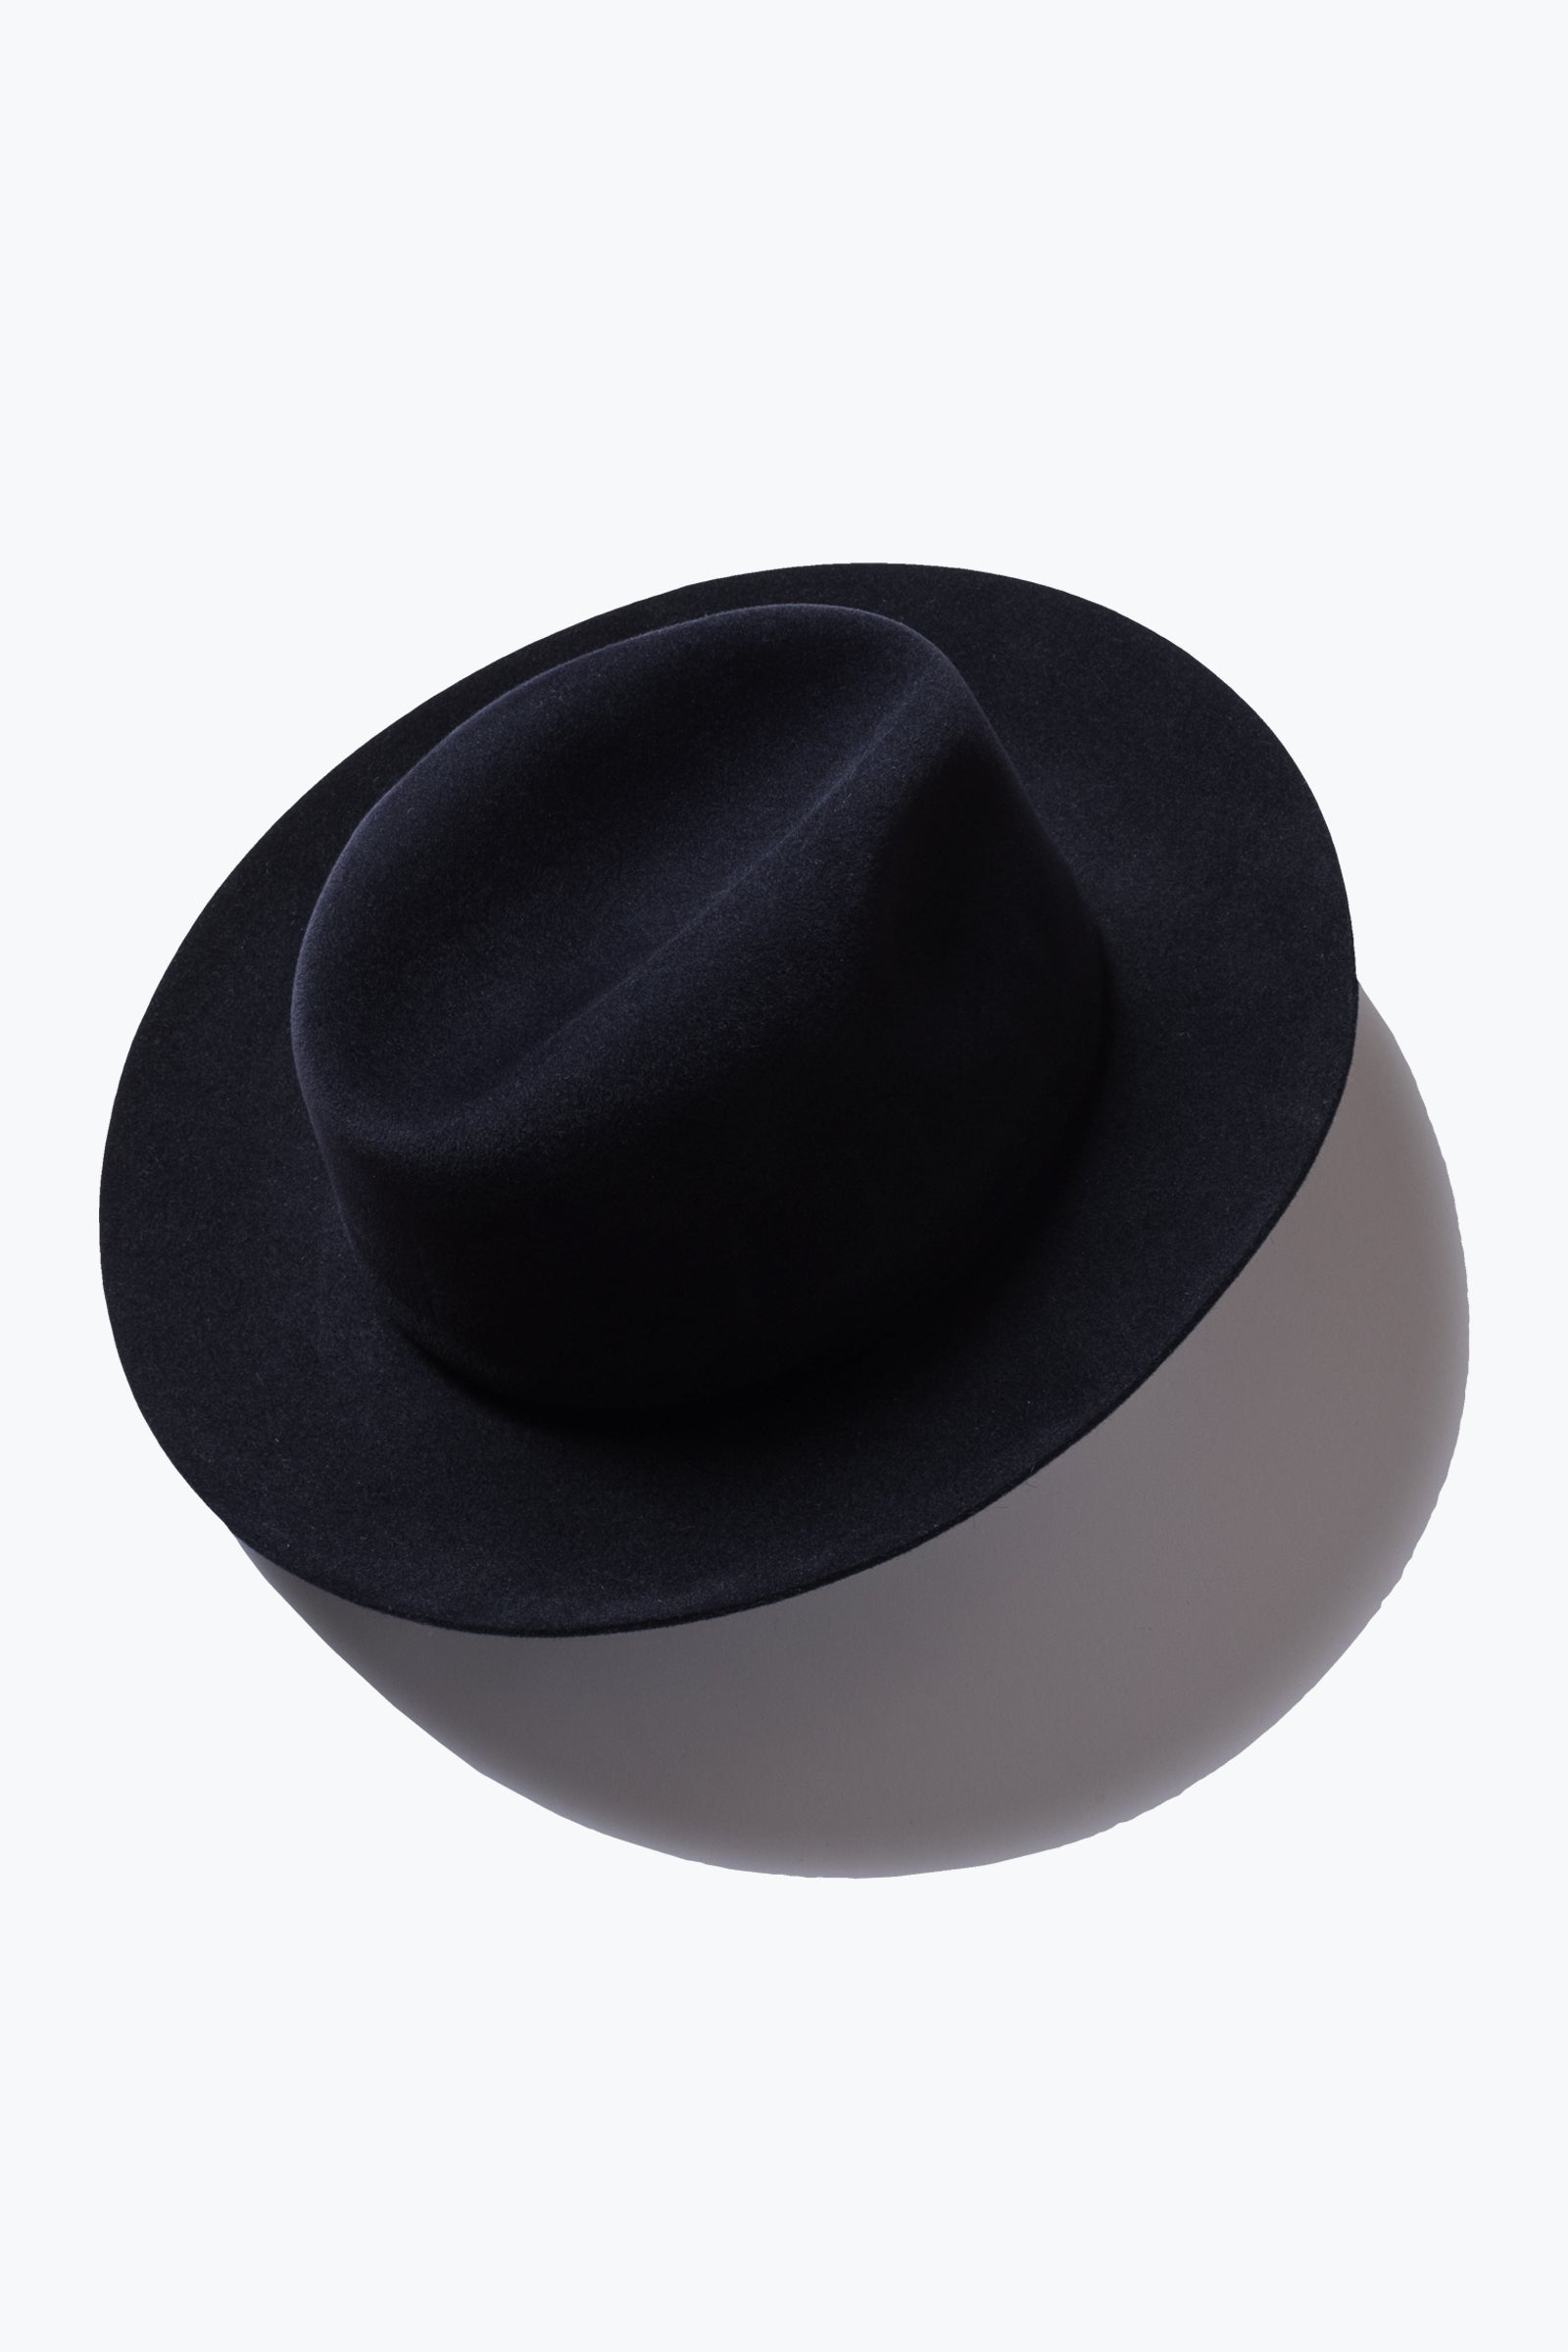 hat - beaver felt rollable (navy)